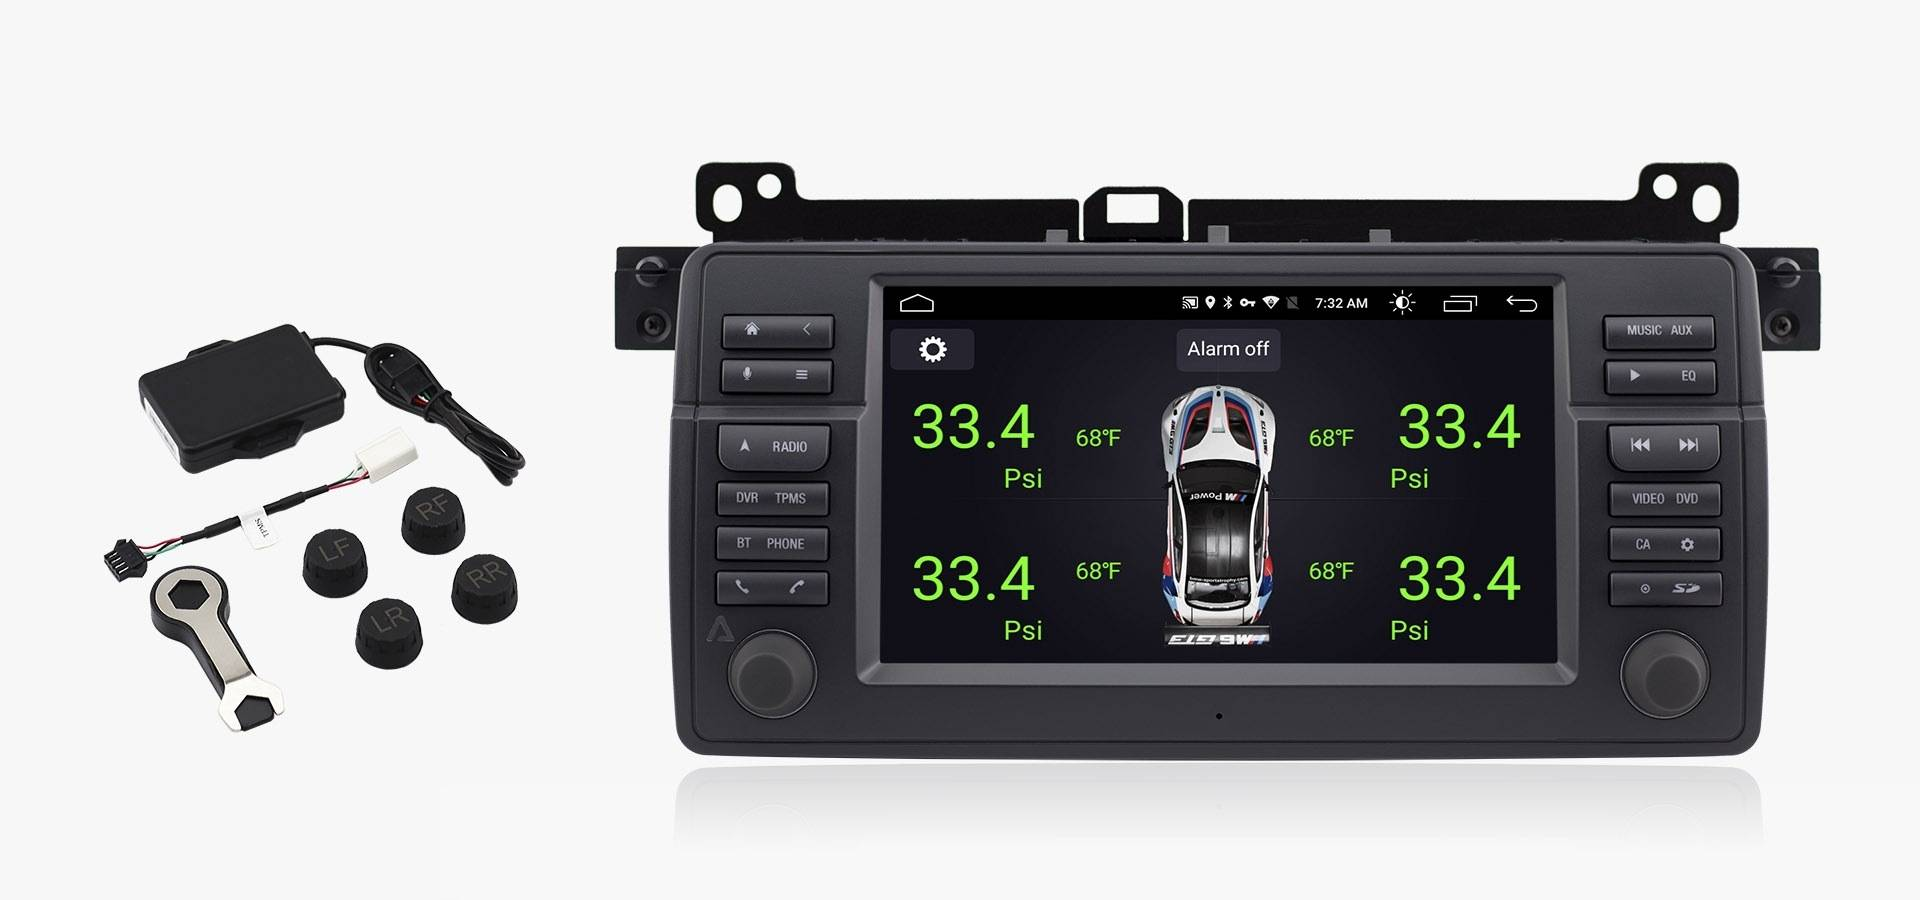 Avant3 For E46 Bmw 3 Series Android Multimedia Navigation System 99 328i Fuse Diagram Requires Optional Tpms Kit